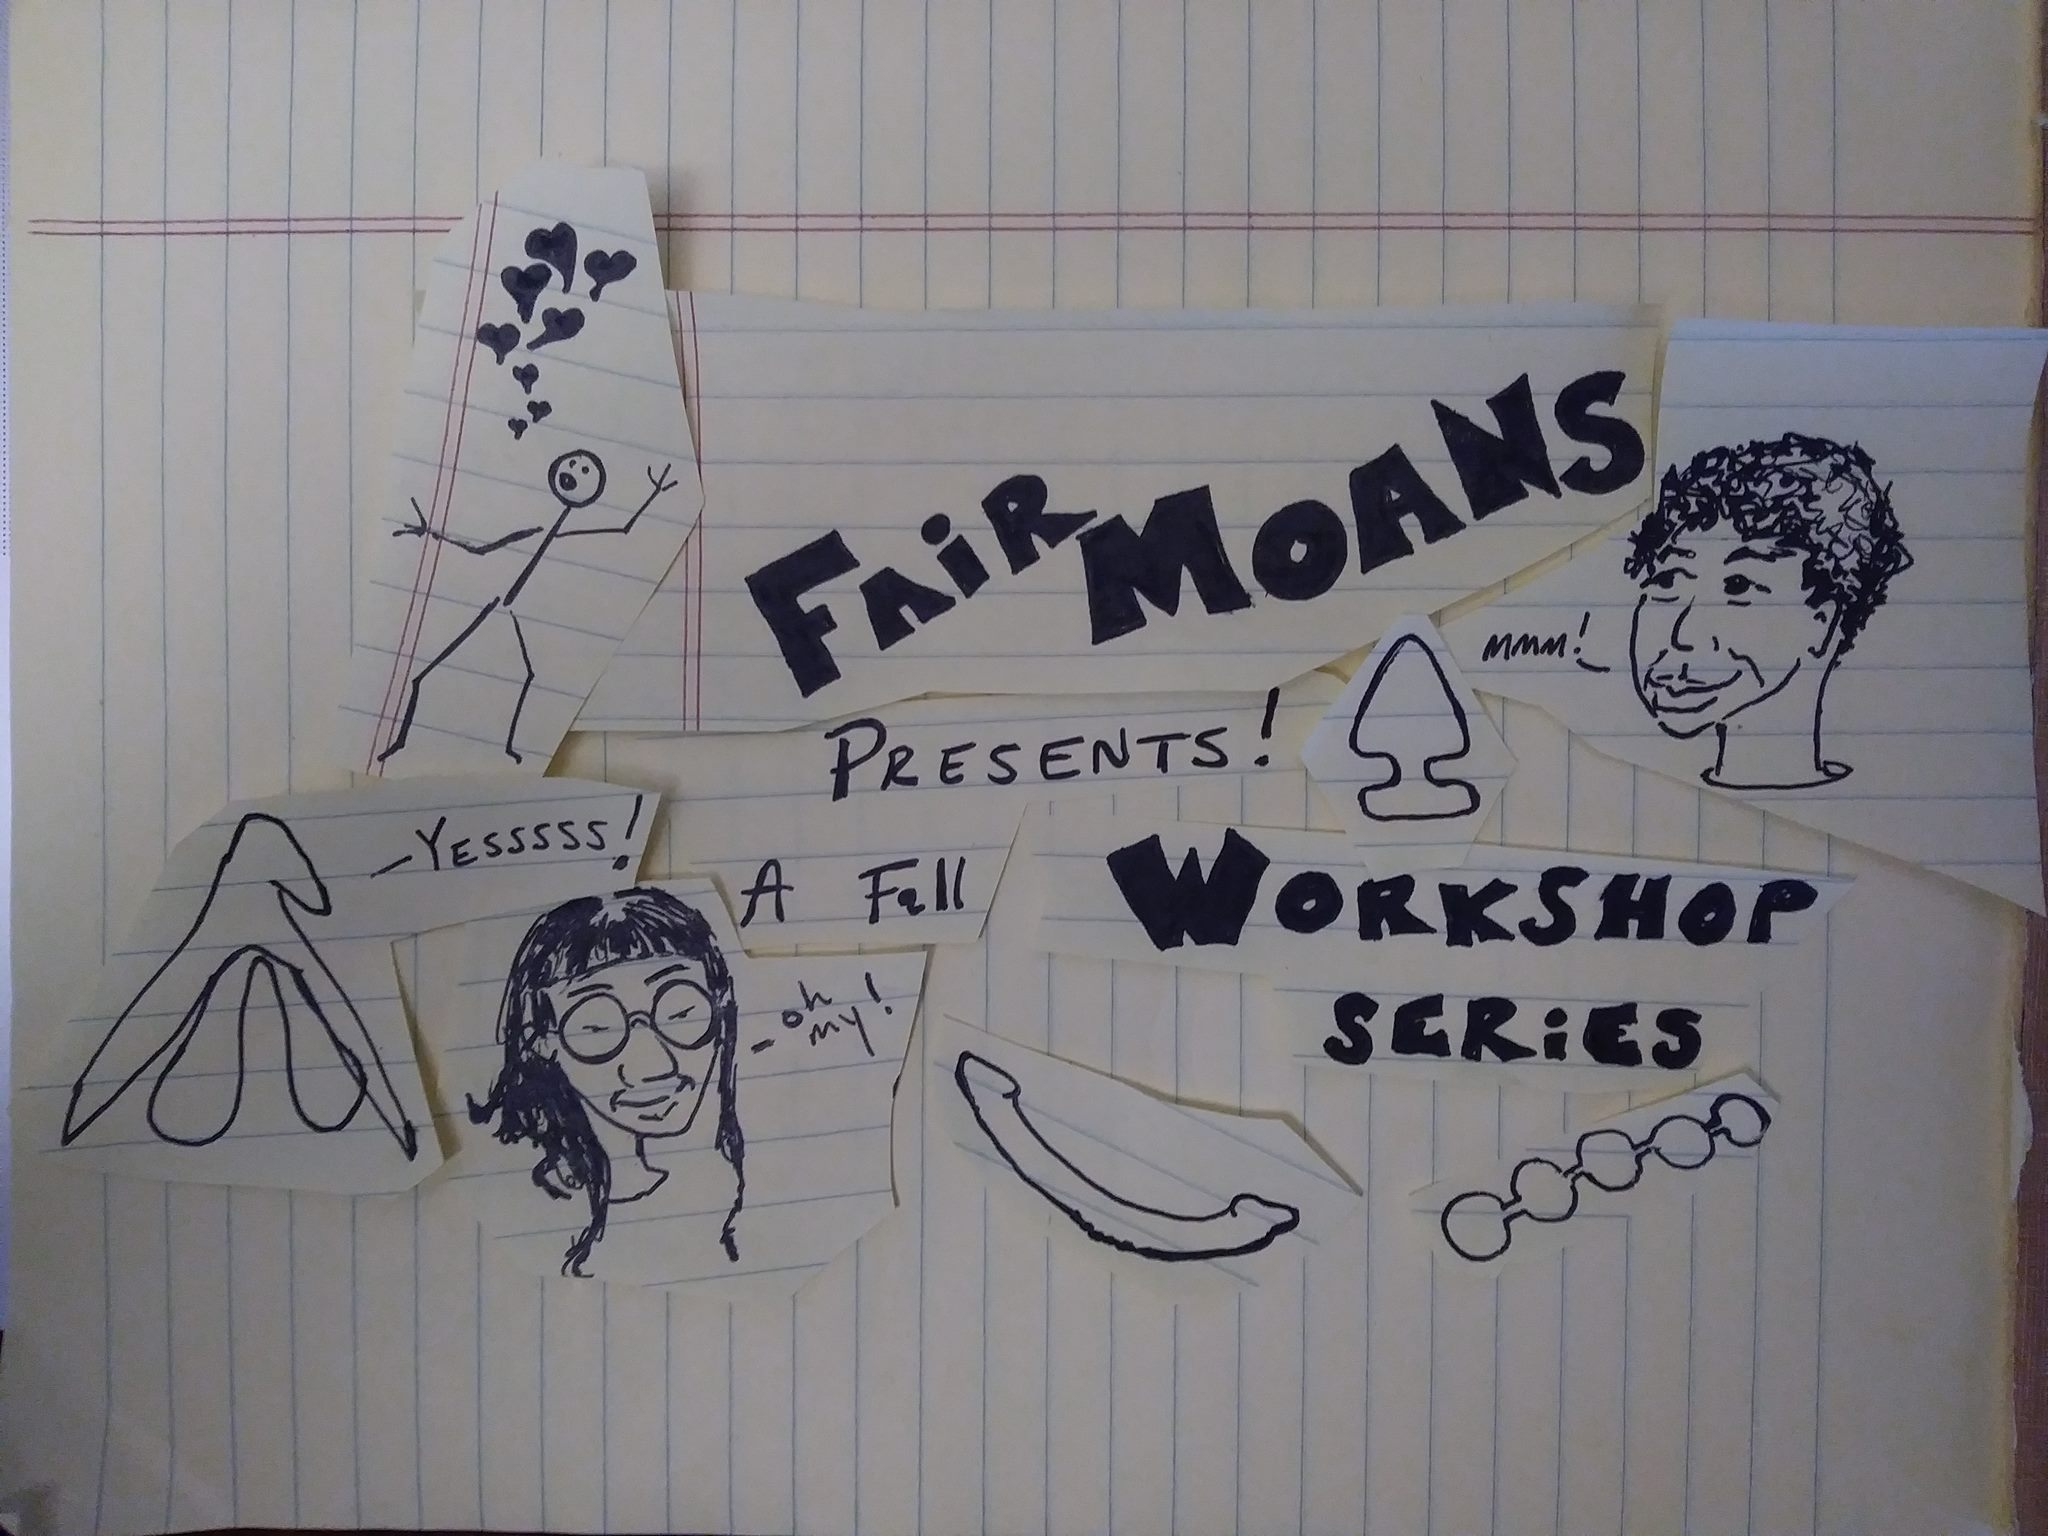 Polyamory Workshop with Fair Moans